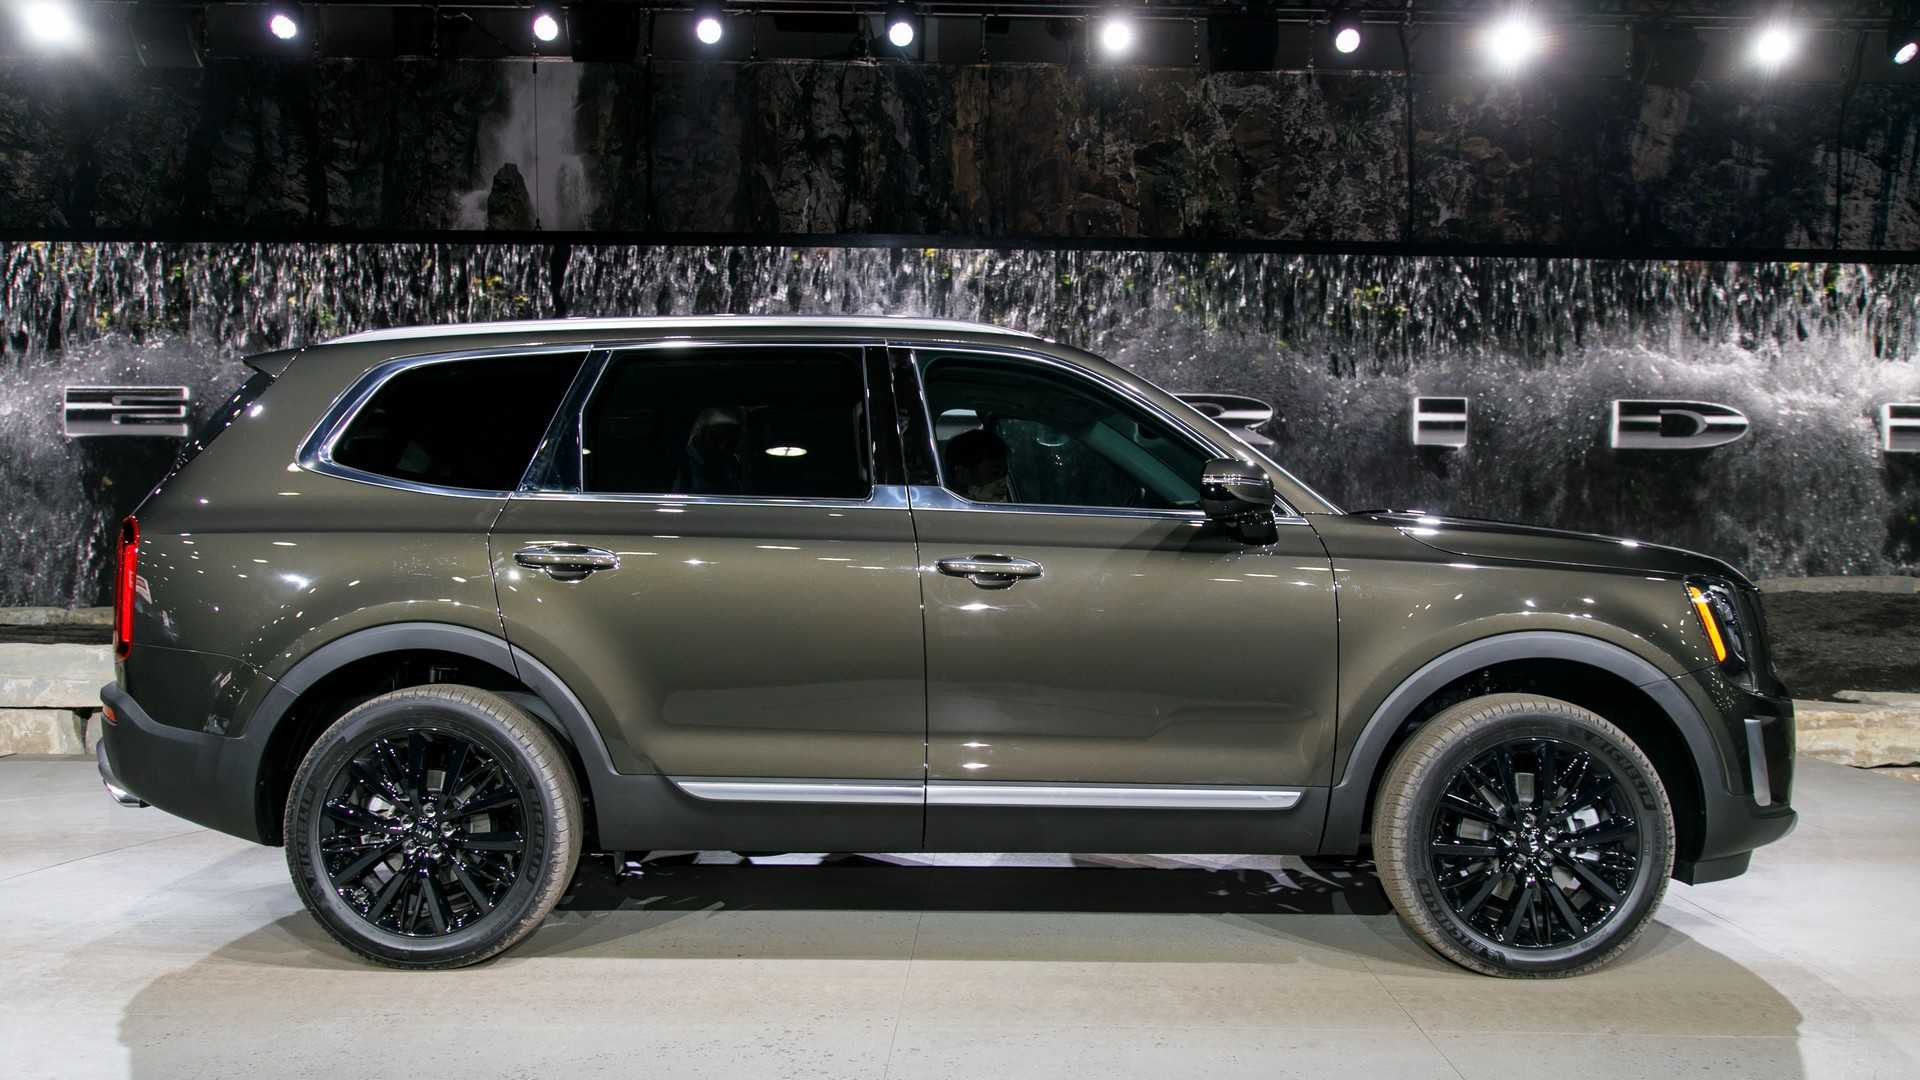 58 Concept of 2020 Kia Telluride Trim Levels New Review with 2020 Kia Telluride Trim Levels